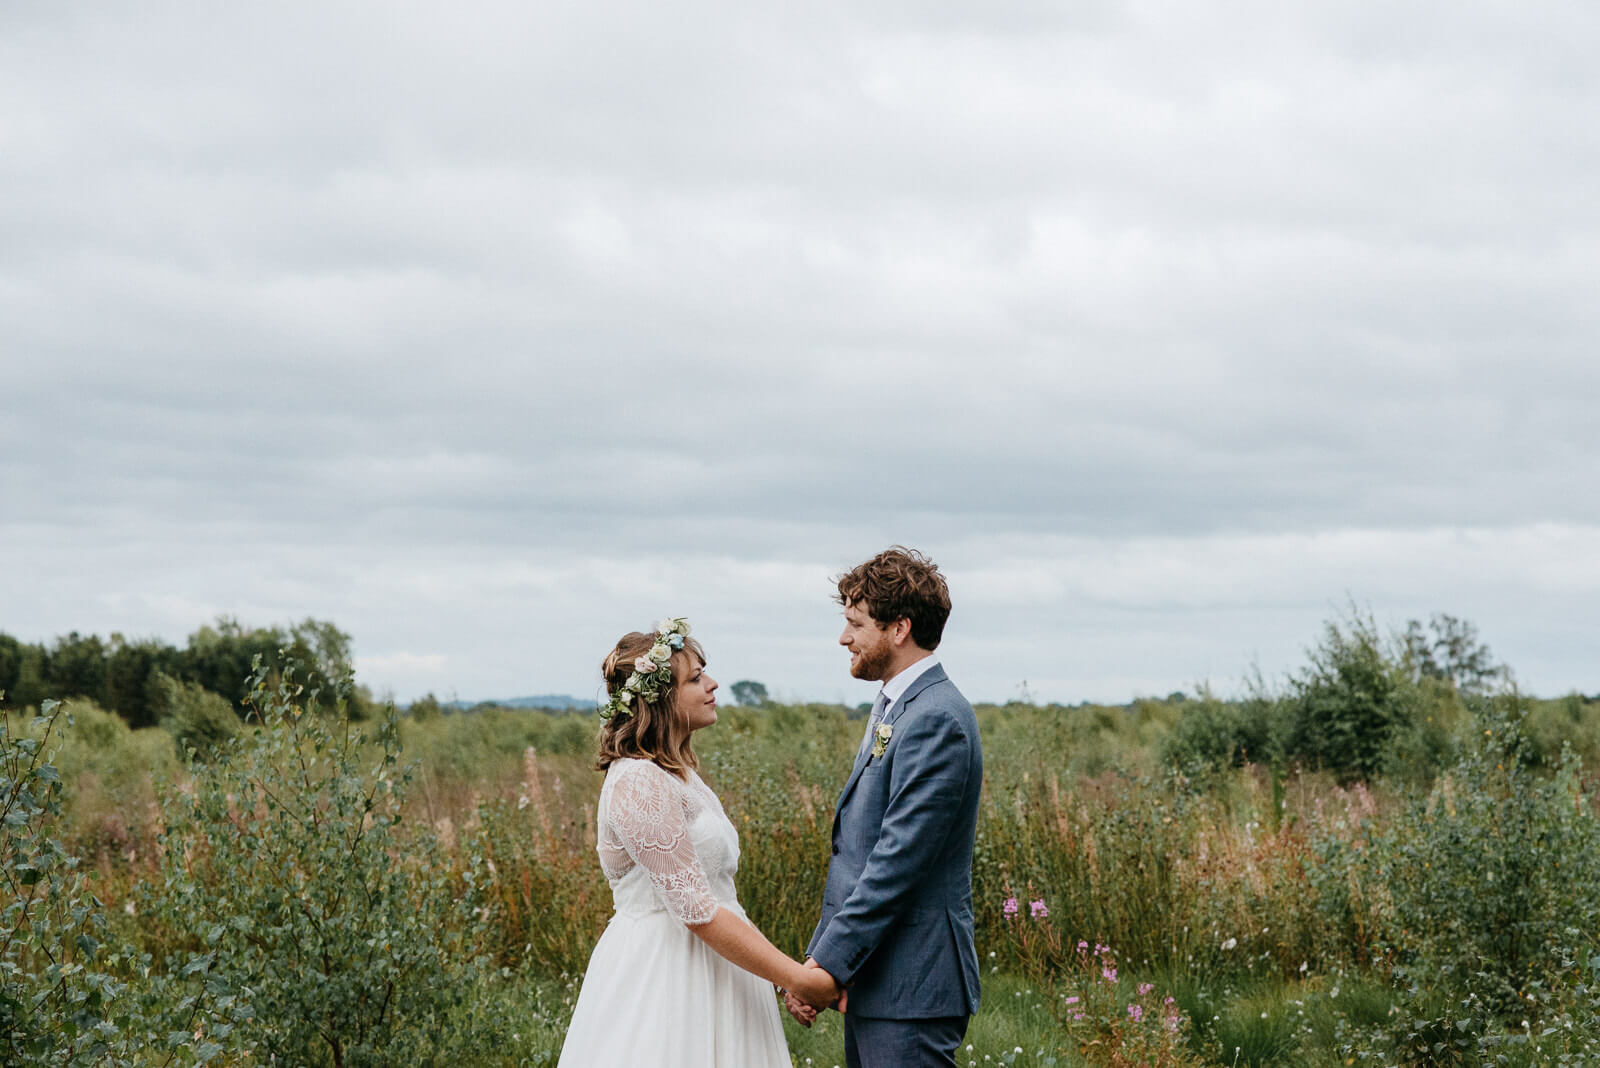 Relaxed portrait of boho bride wearing floral crown and stylish groom on edge of nature reserve mosses in Shropshire